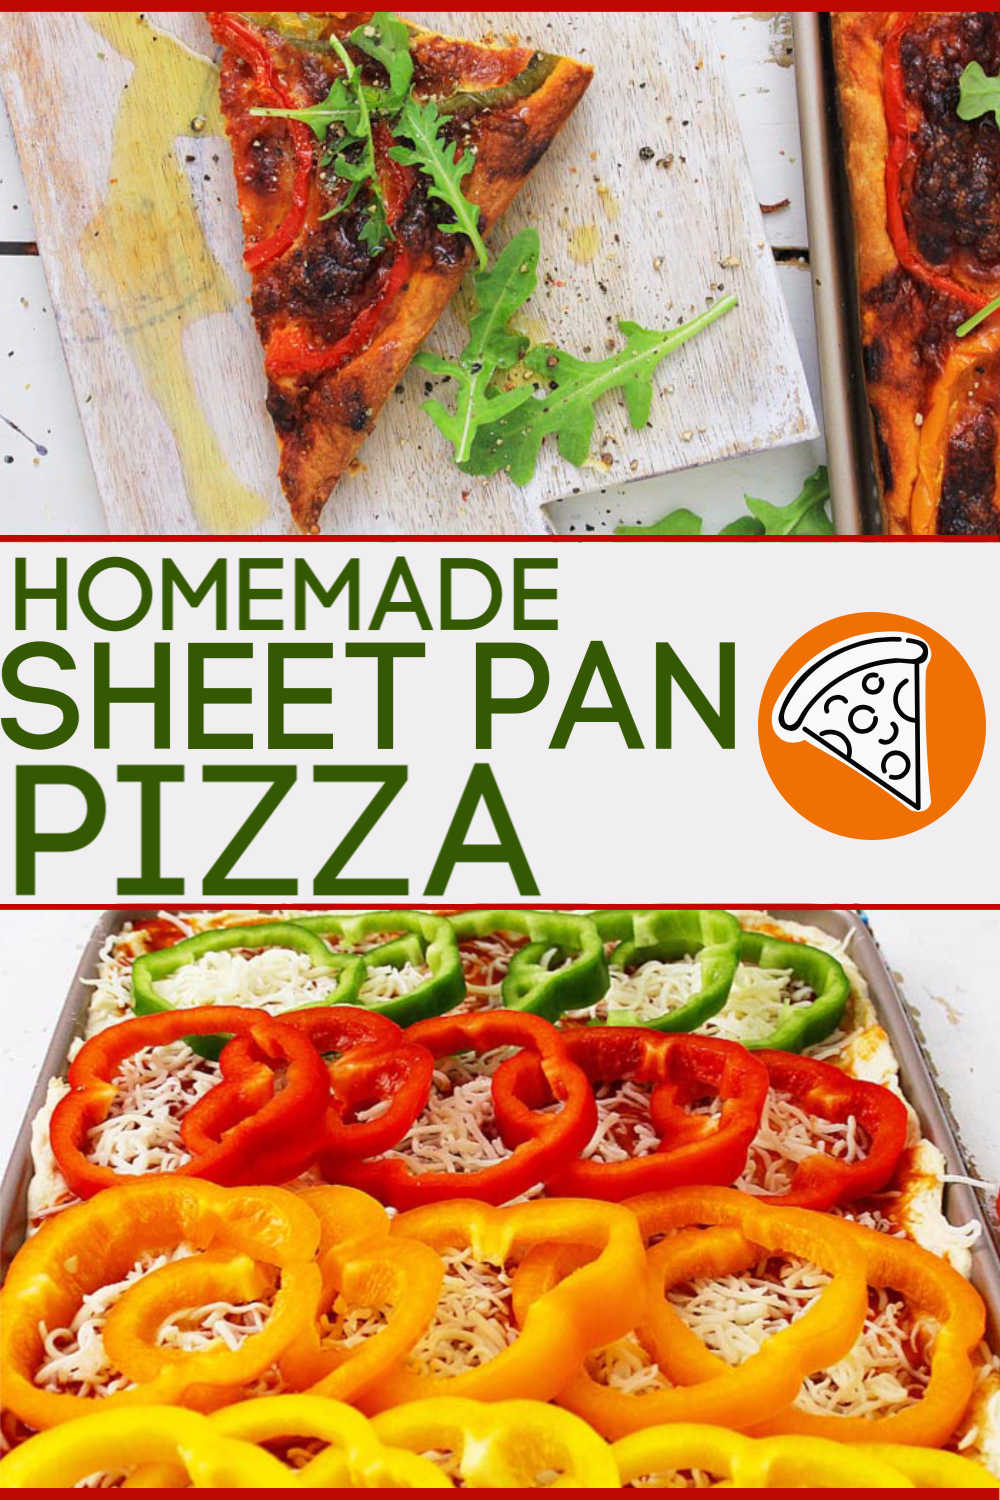 Homemade Sheet Pan Pizza is the perfect recipe for a Friday night after a hard week at work. Filled with Fresh vegetables, this is a frugal option to eating out. Add this to your family's favorite recipe list! #pizza #homemade #sheetpan